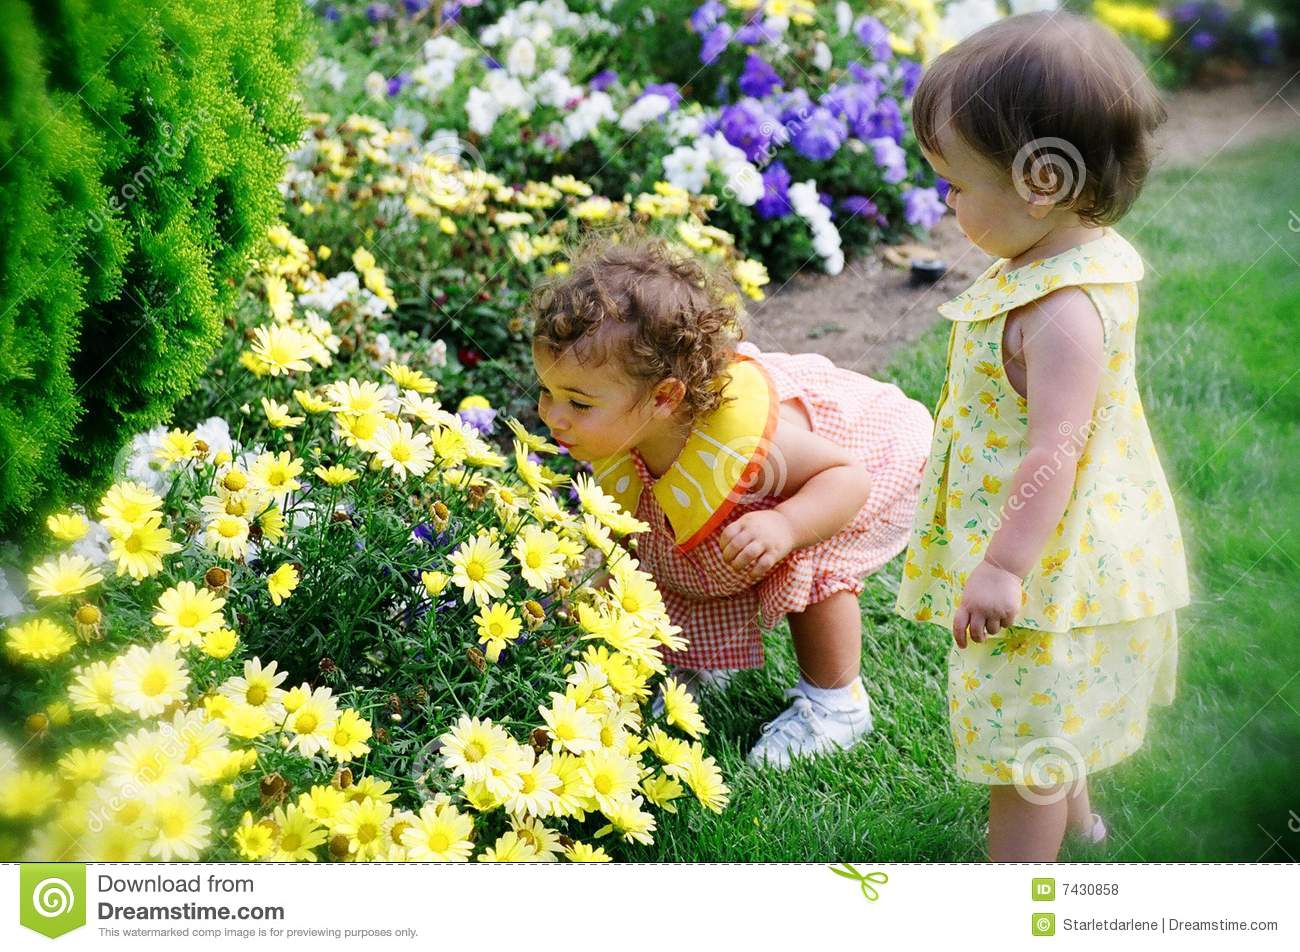 young-girls-flowering